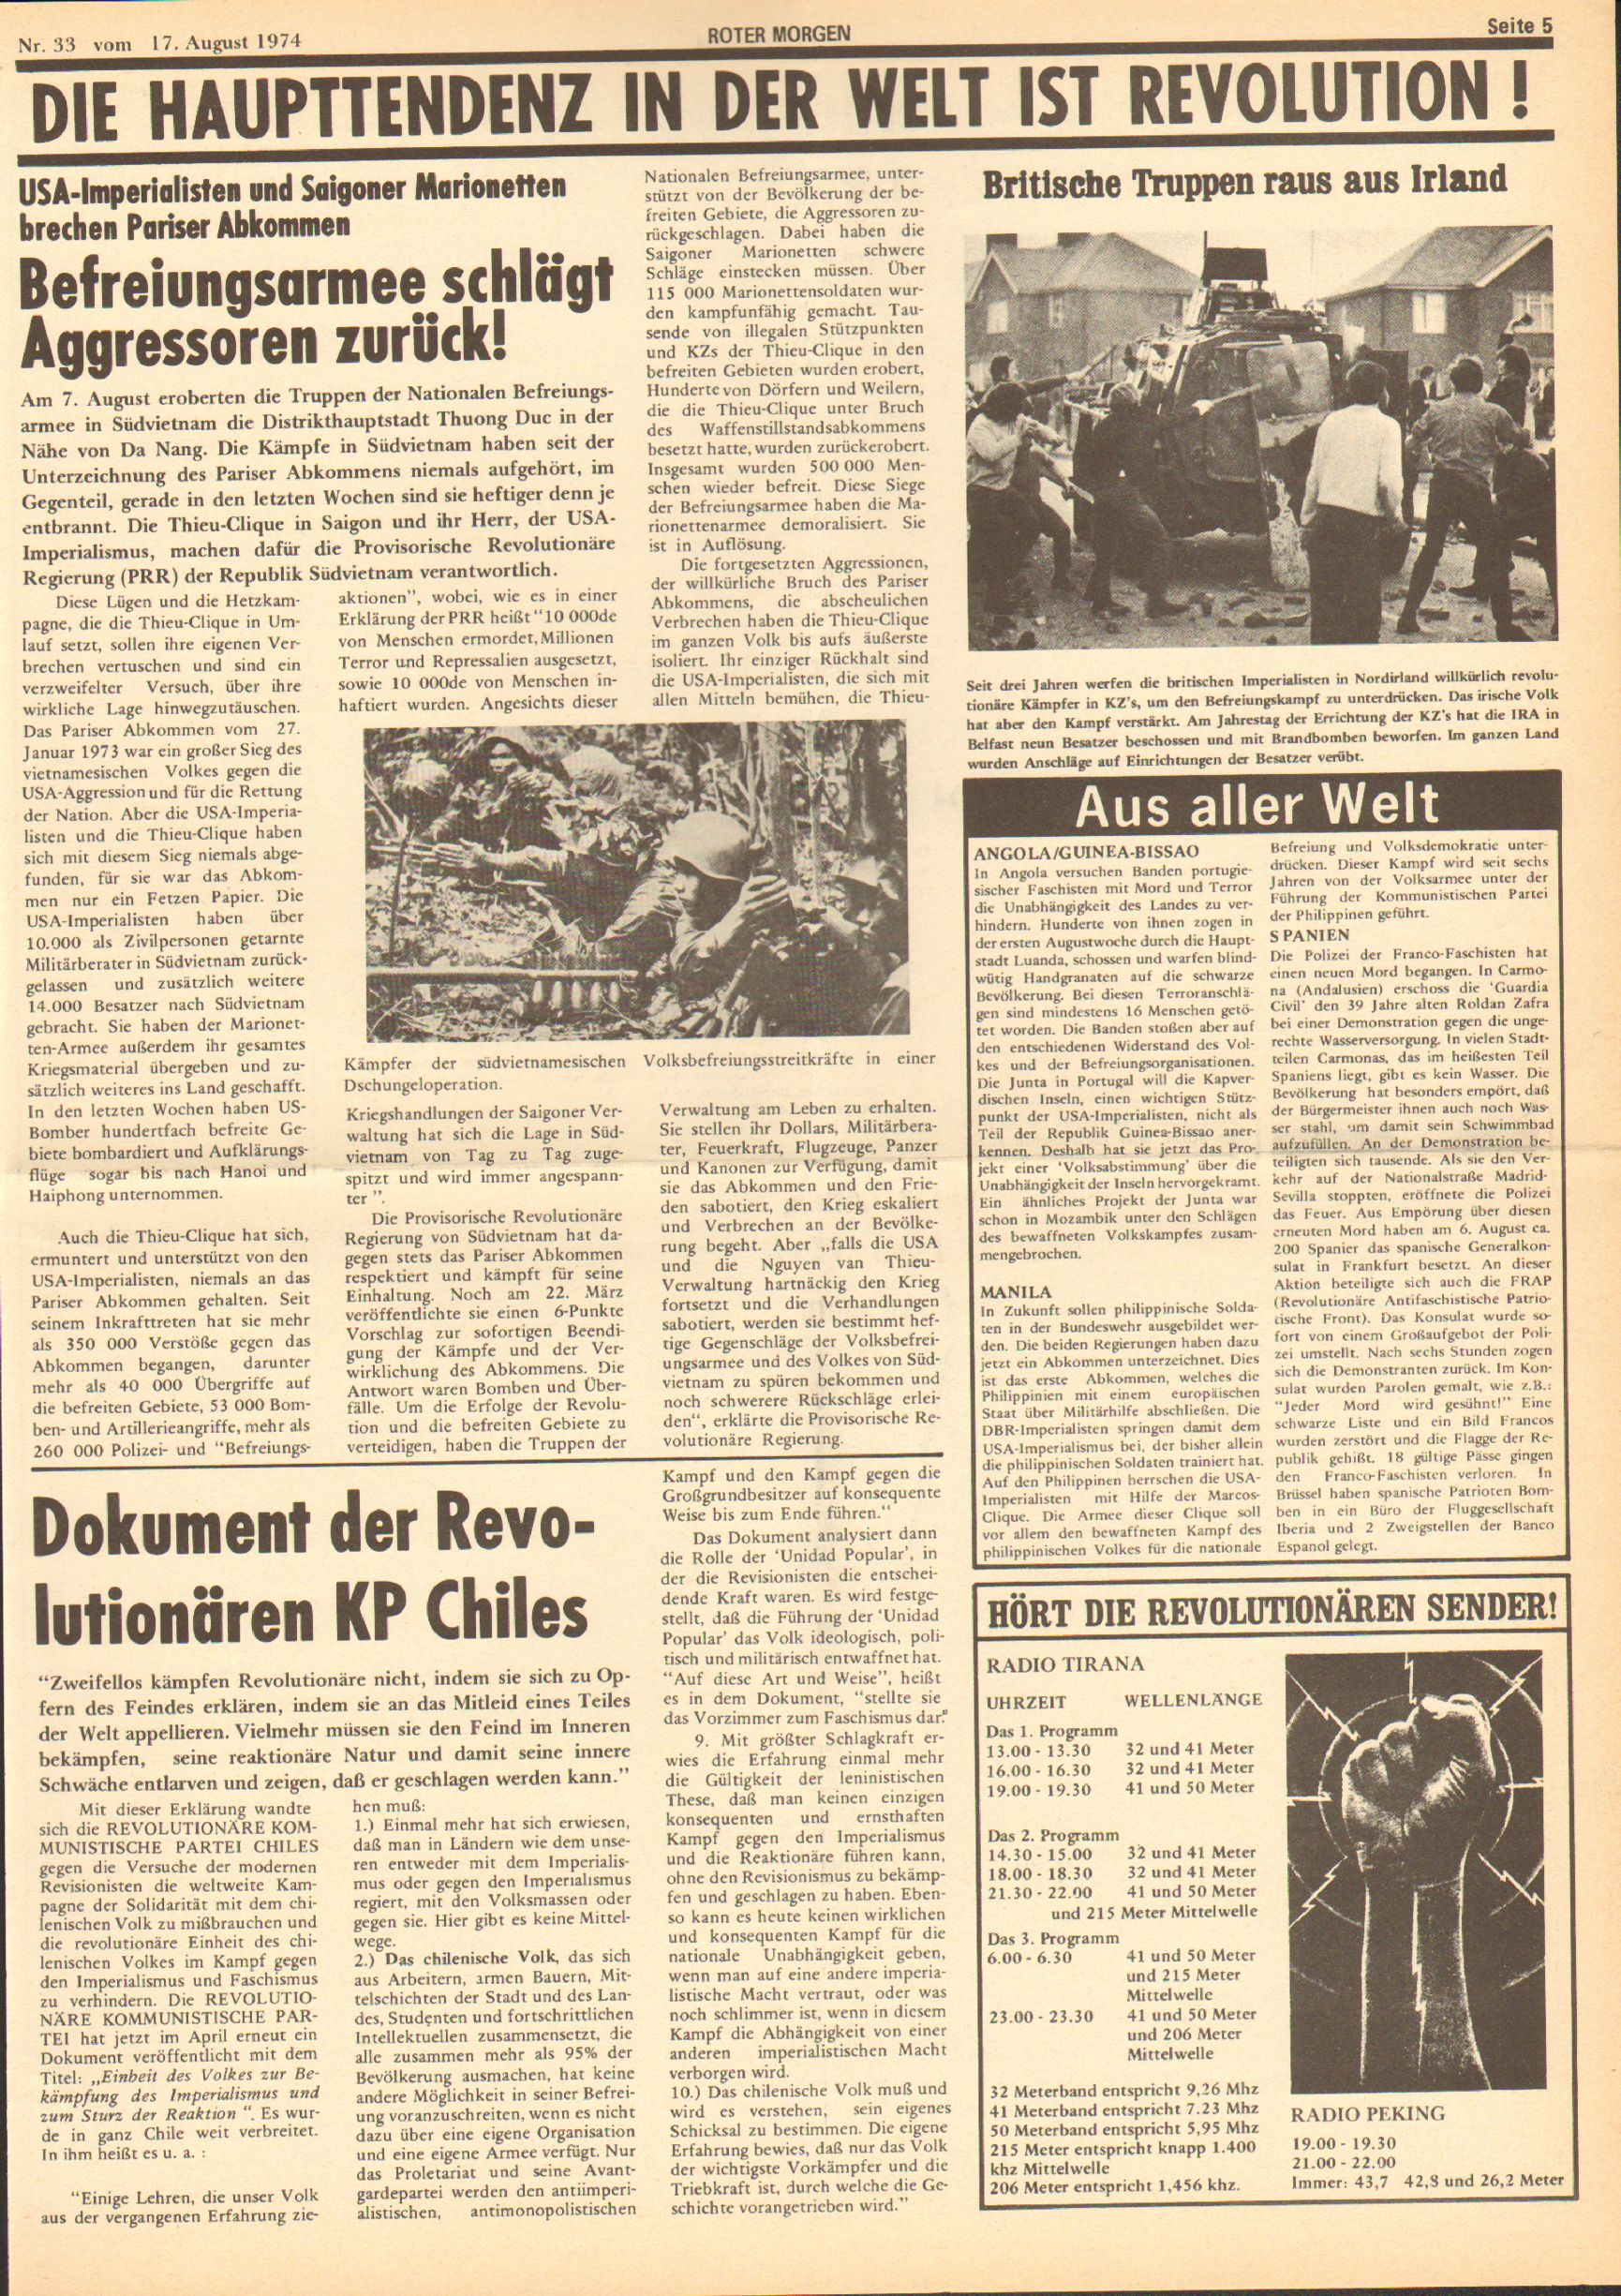 Roter Morgen, 8. Jg., 17. August 1974, Nr. 33, Seite 5